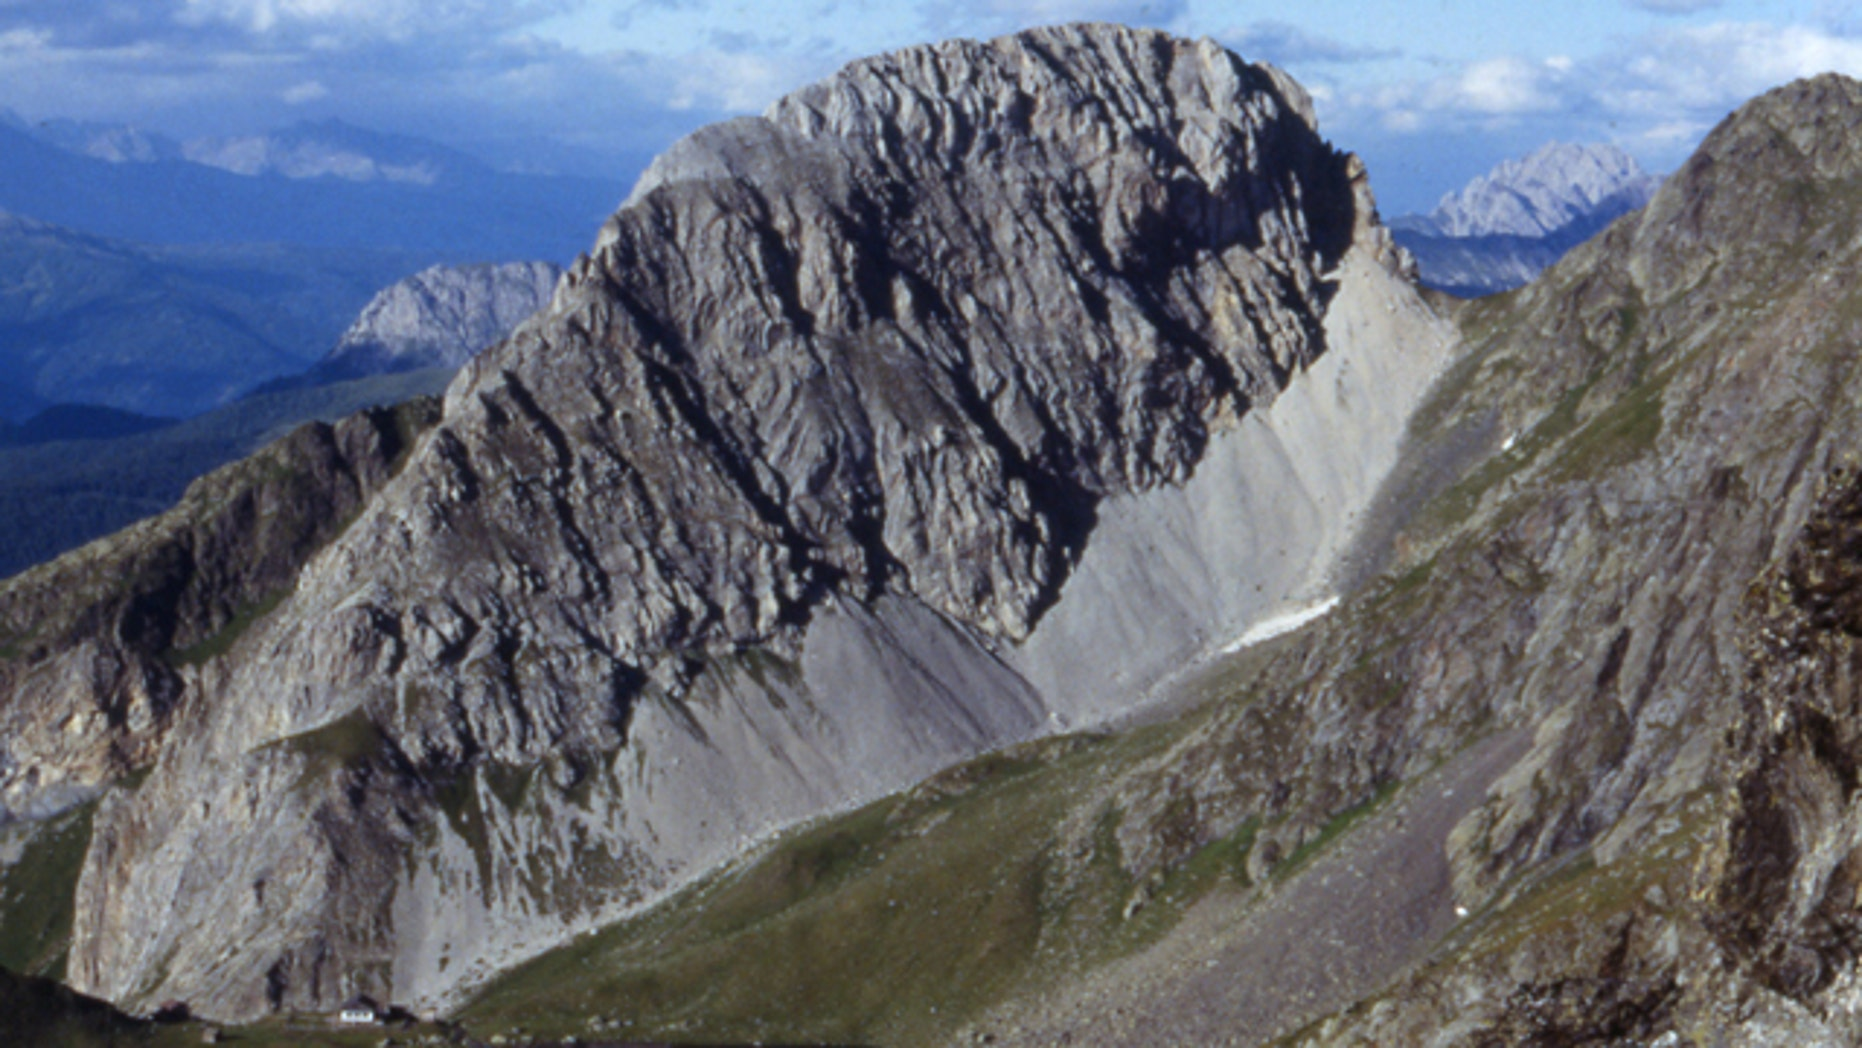 This undated photo provided by the community of Kartitsch shows the 2,600 meters (over 8,500 feet) high Rosskopf mountain in Kartisch, eastern Tyrol, Austria, that was for sale along with a neighboring mountain. Austria's government on Tuesday, June 14, 2011 postponed the planned sale of the two alpine summits after an outpouring of national outrage. Austria's privatization agency announced a decision after an emergency meeting between Economics Minister Reinhold Mitterlehner and top officials in charge of selling of national property to the private sector. (AP Photo/Community of Kartitsch)